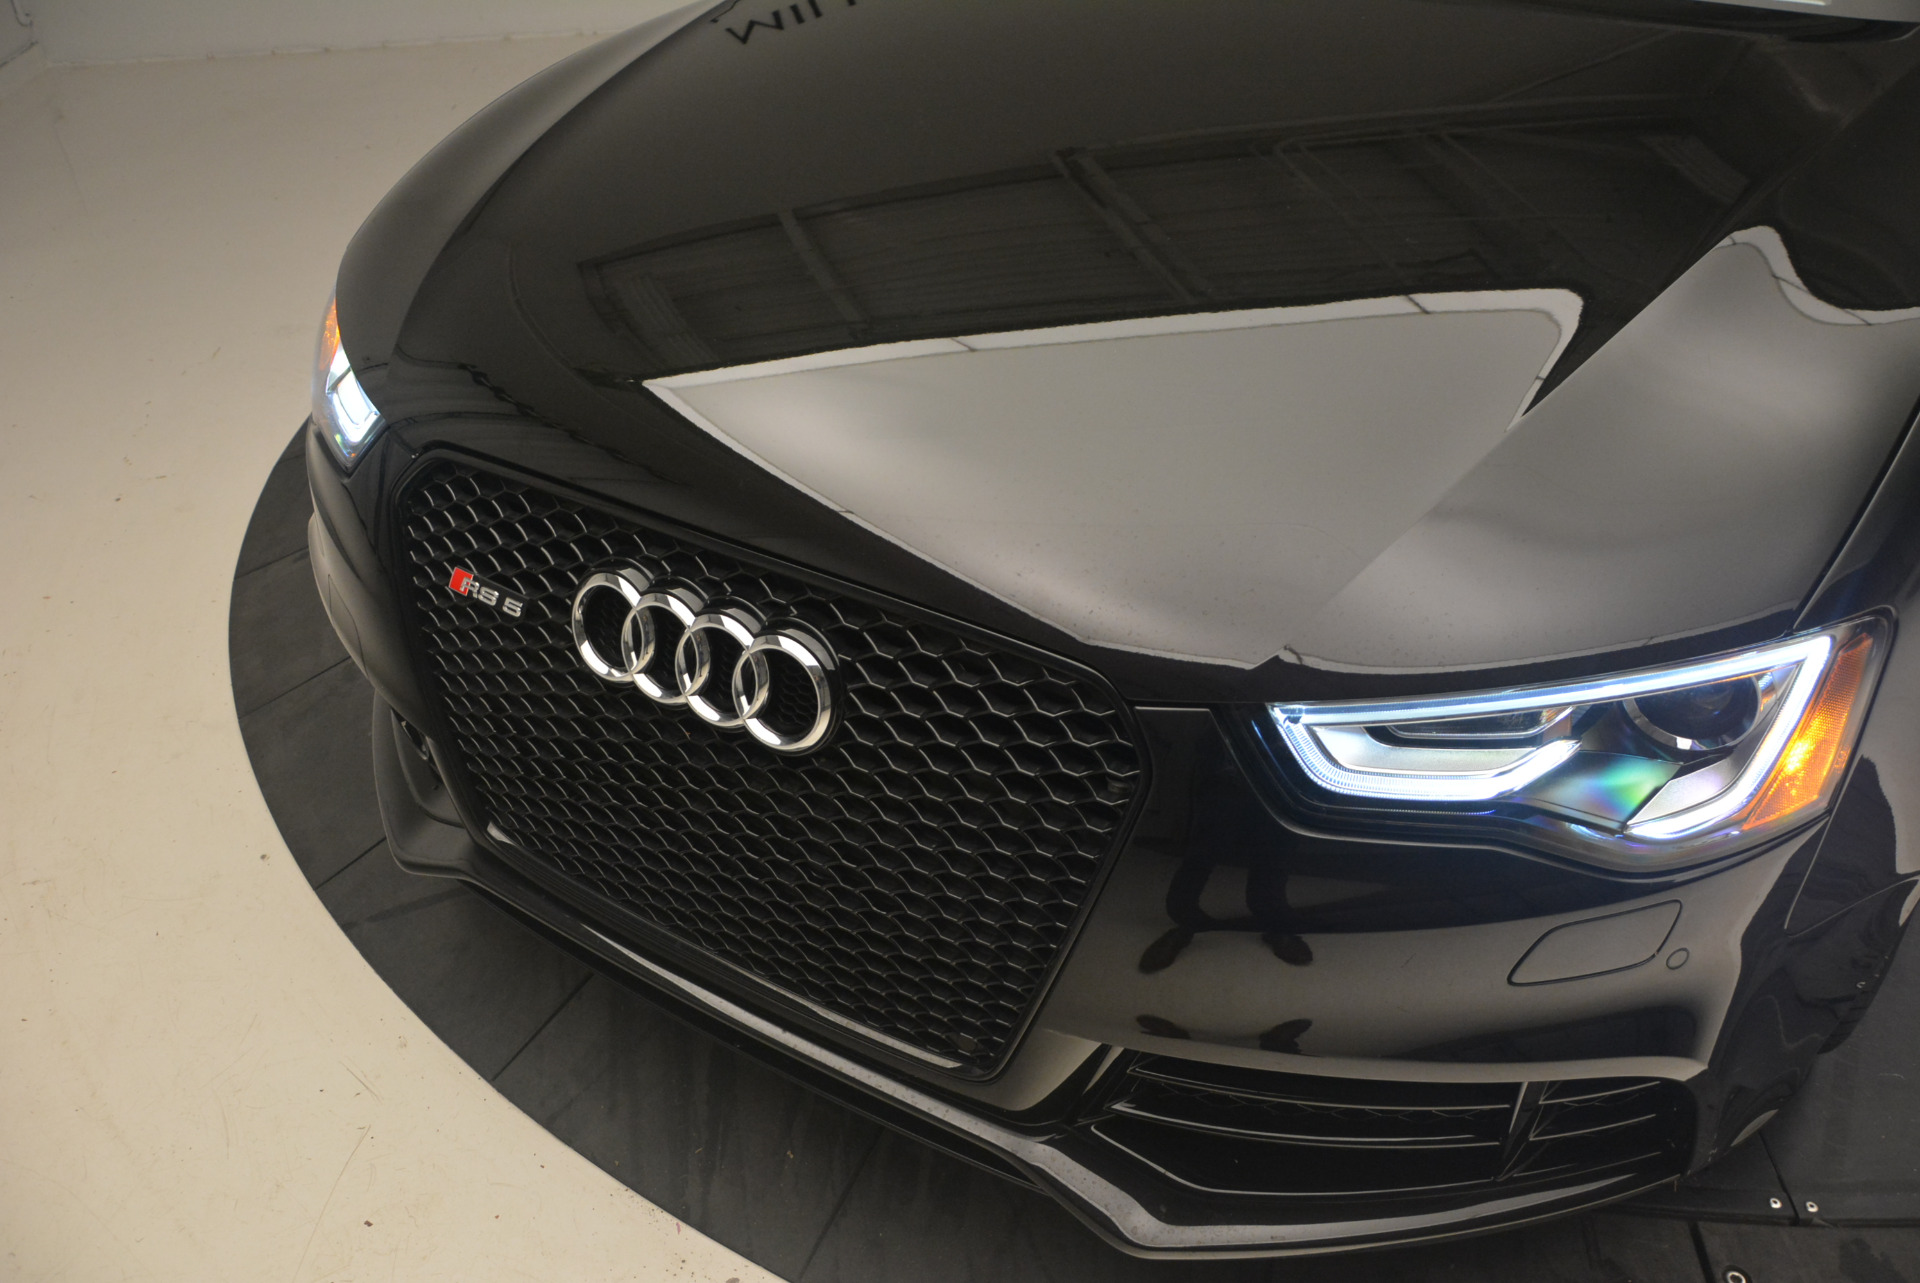 Used 2014 Audi RS 5 quattro For Sale In Greenwich, CT 1149_p25